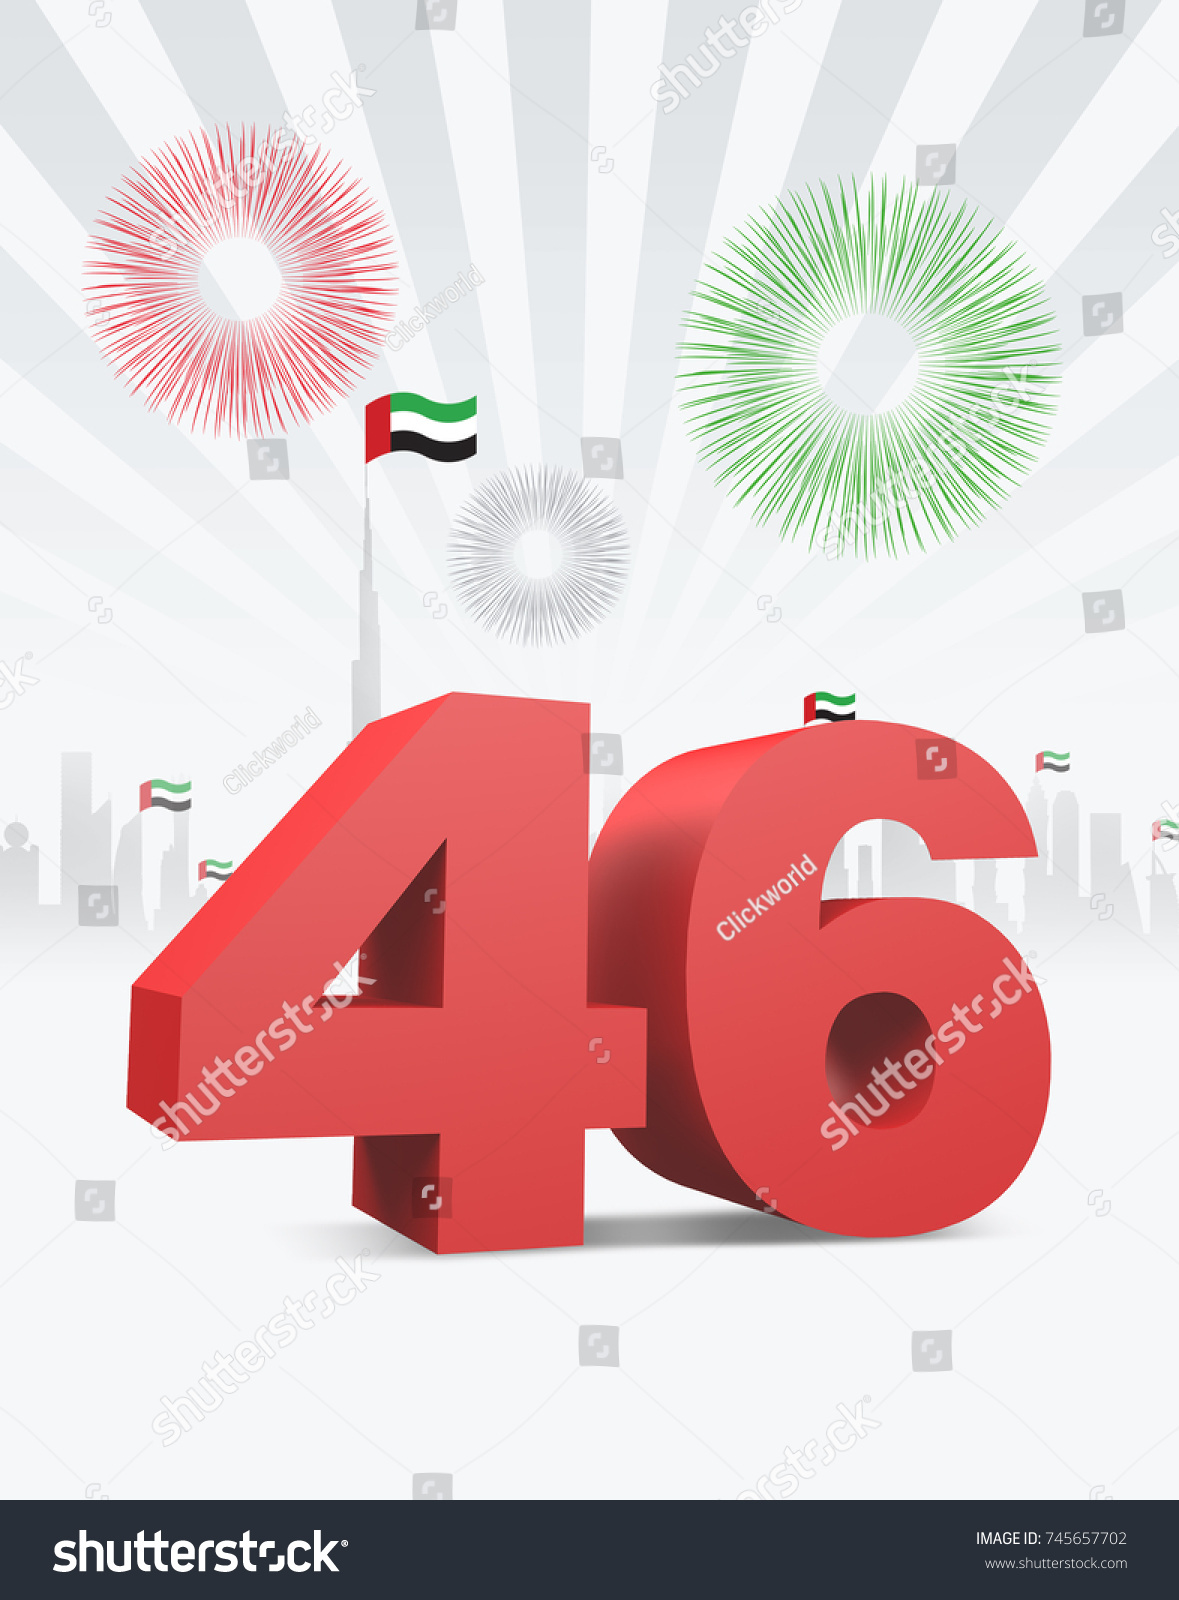 46th uae national day 3 d rendering stock illustration 745657702 46th uae national day 3d rendering stopboris Choice Image